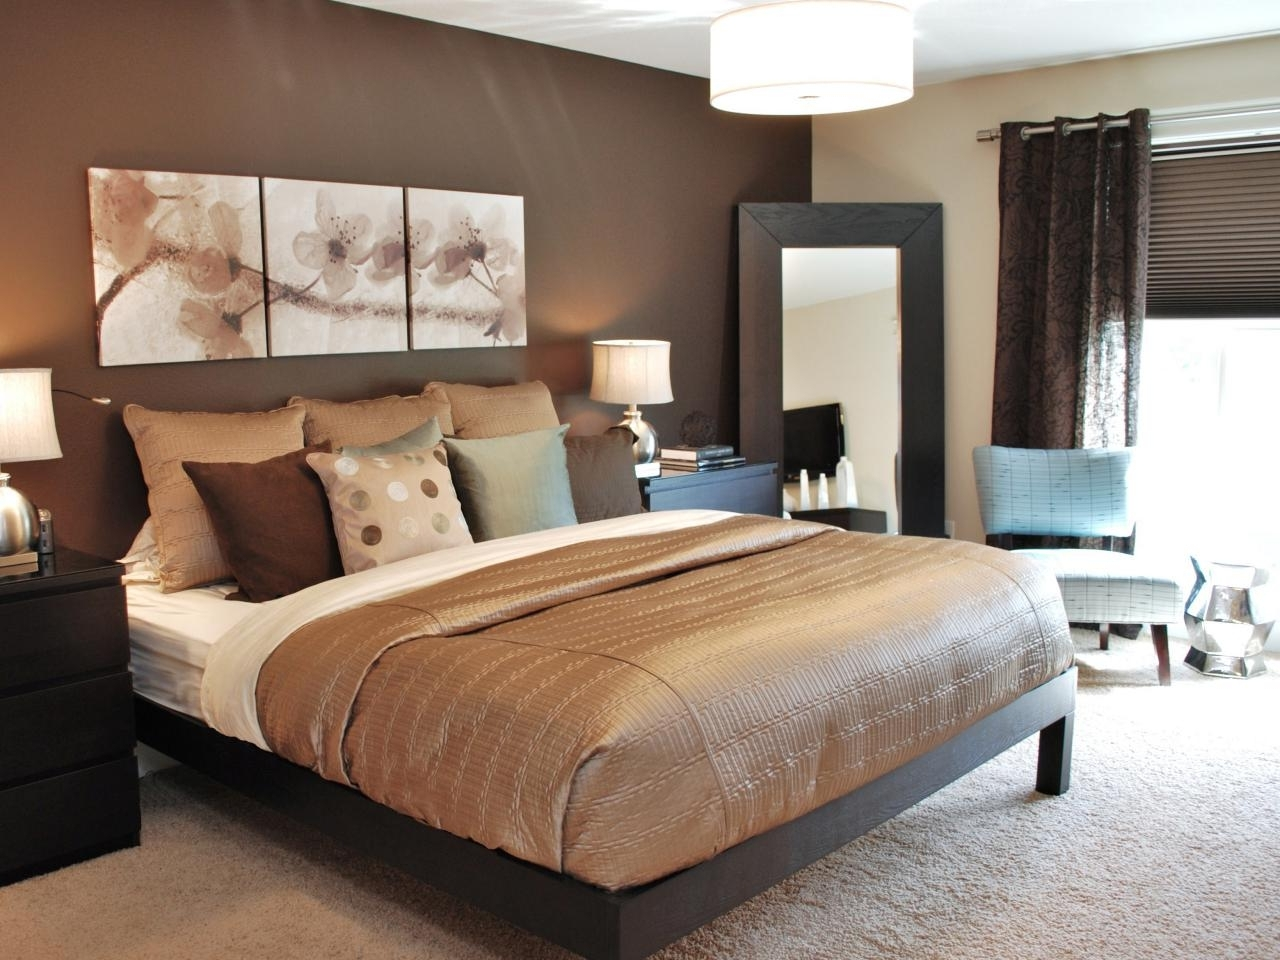 Rugs Beige Sisal With Brown Blankets And Wall Art Plus Pendant With Fashionable Over The Bed Wall Art (View 15 of 15)